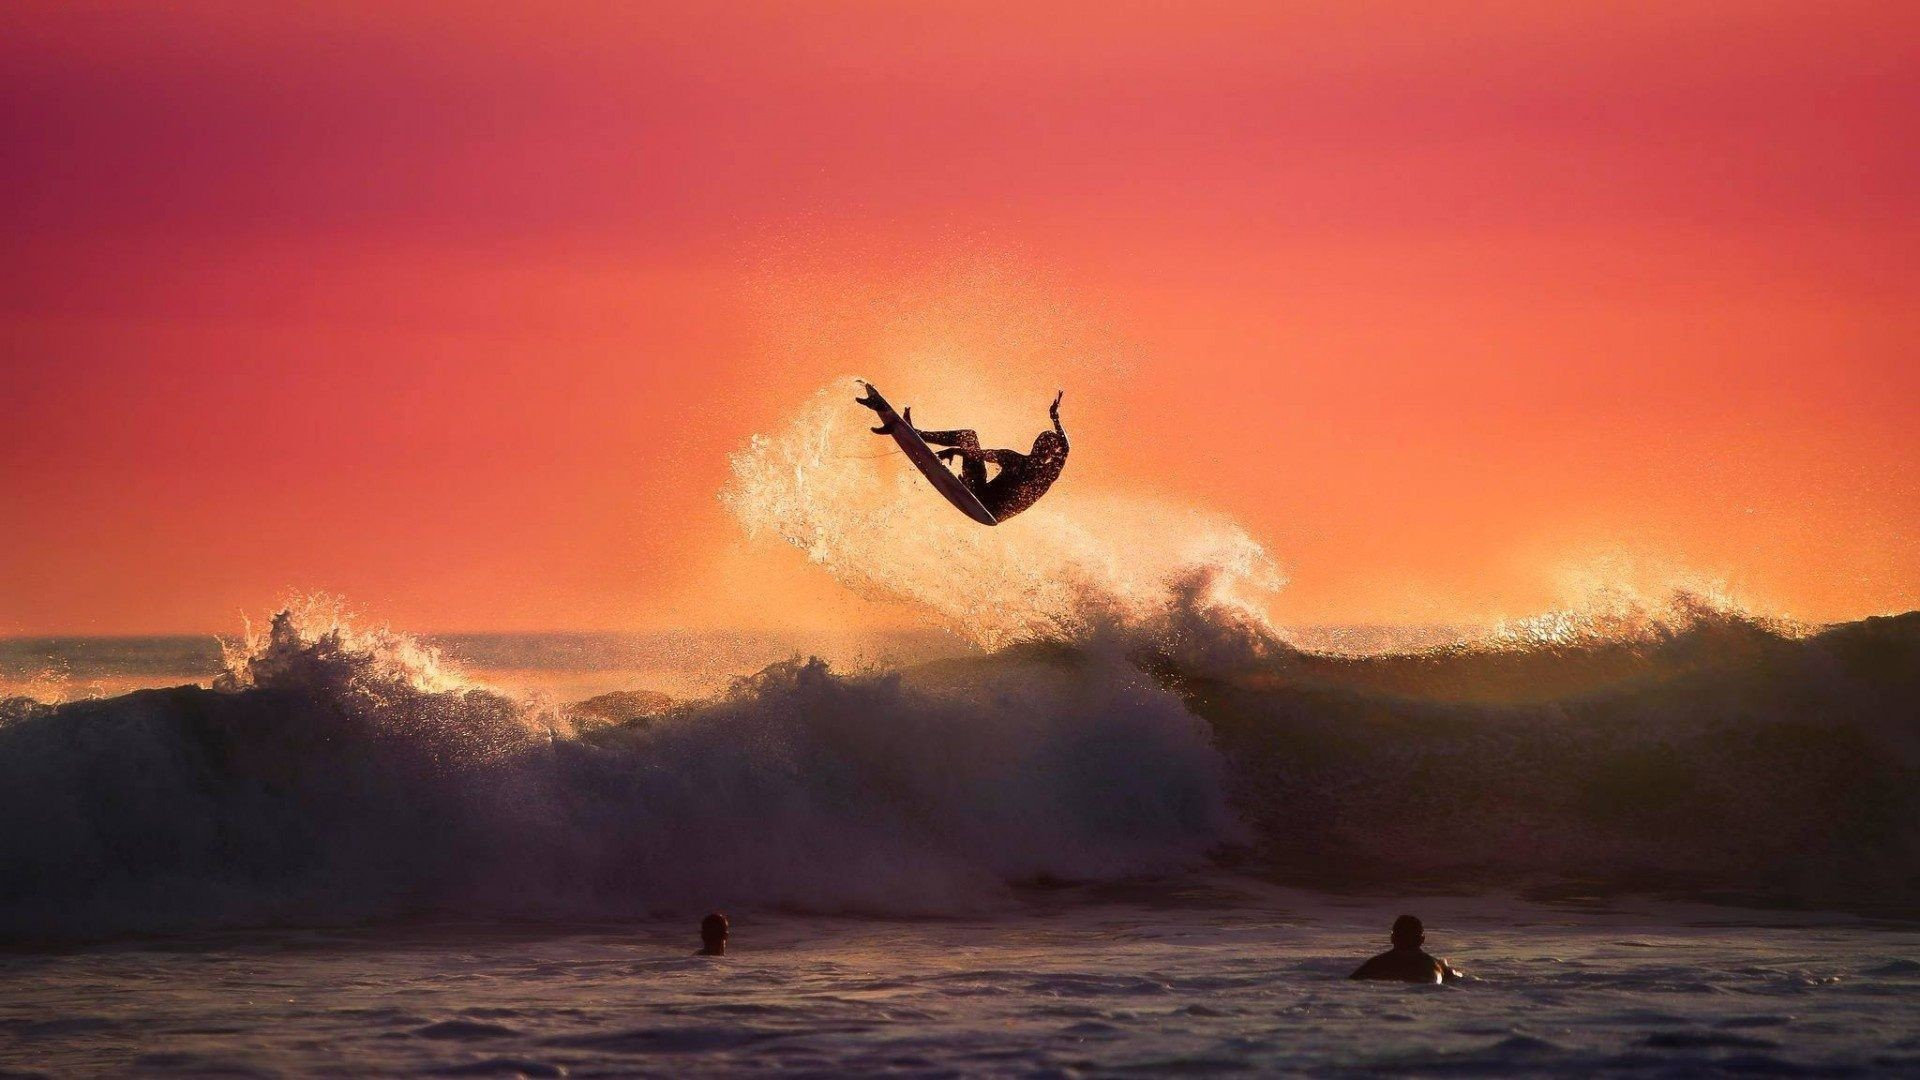 Wide HDQ Surfing Wallpapers Superb Backgrounds